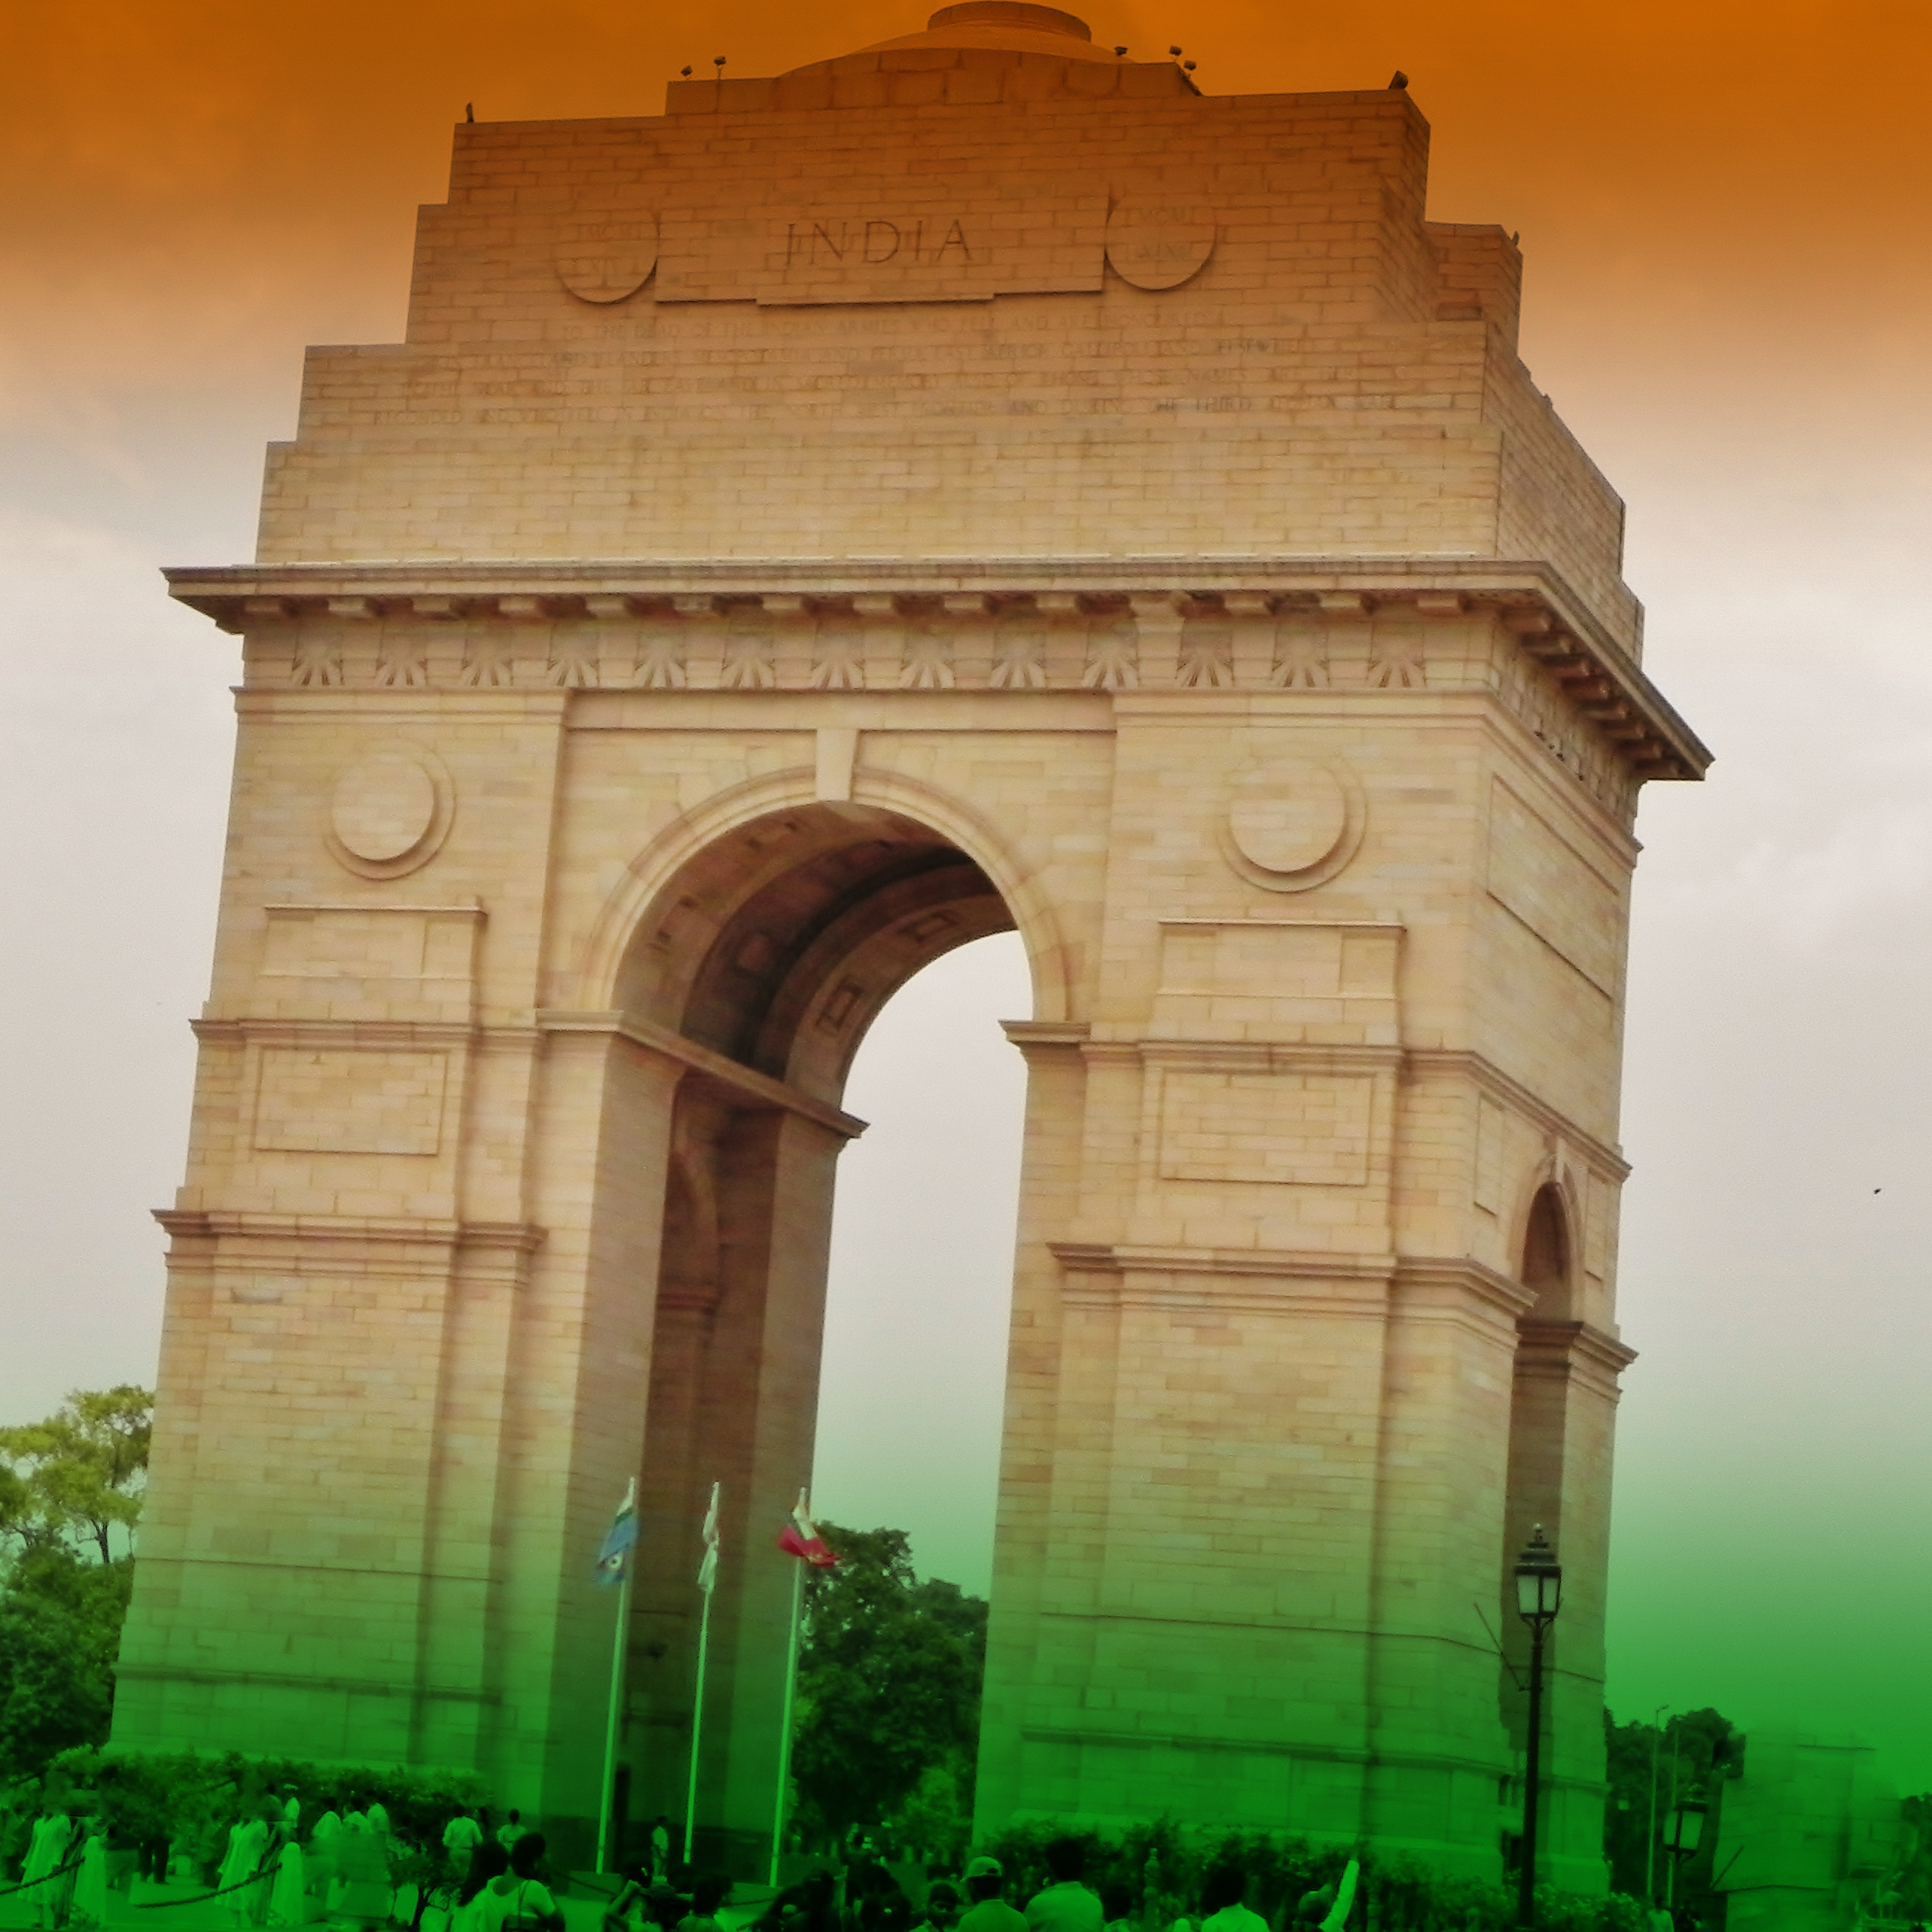 essay on india gate delhi Visit to india gate essay – 681430 this gateway of india (not to be confused by india gate in delhi) is situated at in the india gate by kamal (kam.